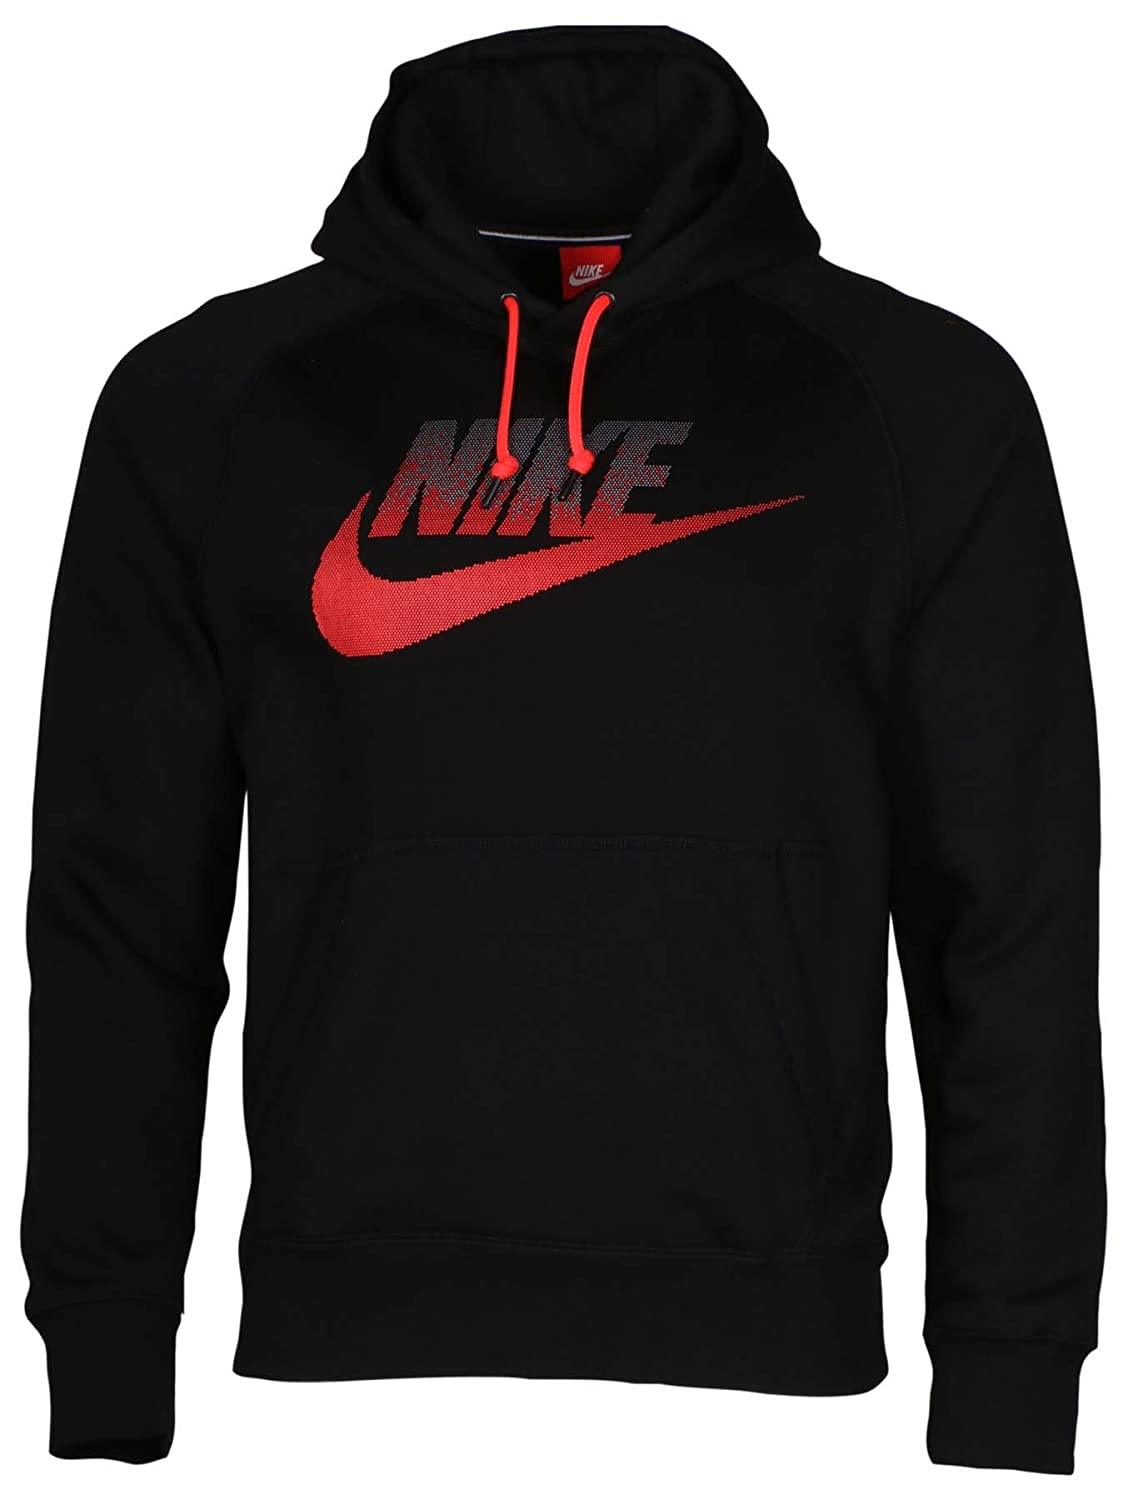 1a1c7985f8ac Amazon.com  Nike Men s AW77 Futura Fleece Pullover Hoodie-Black Red-Medium   Clothing